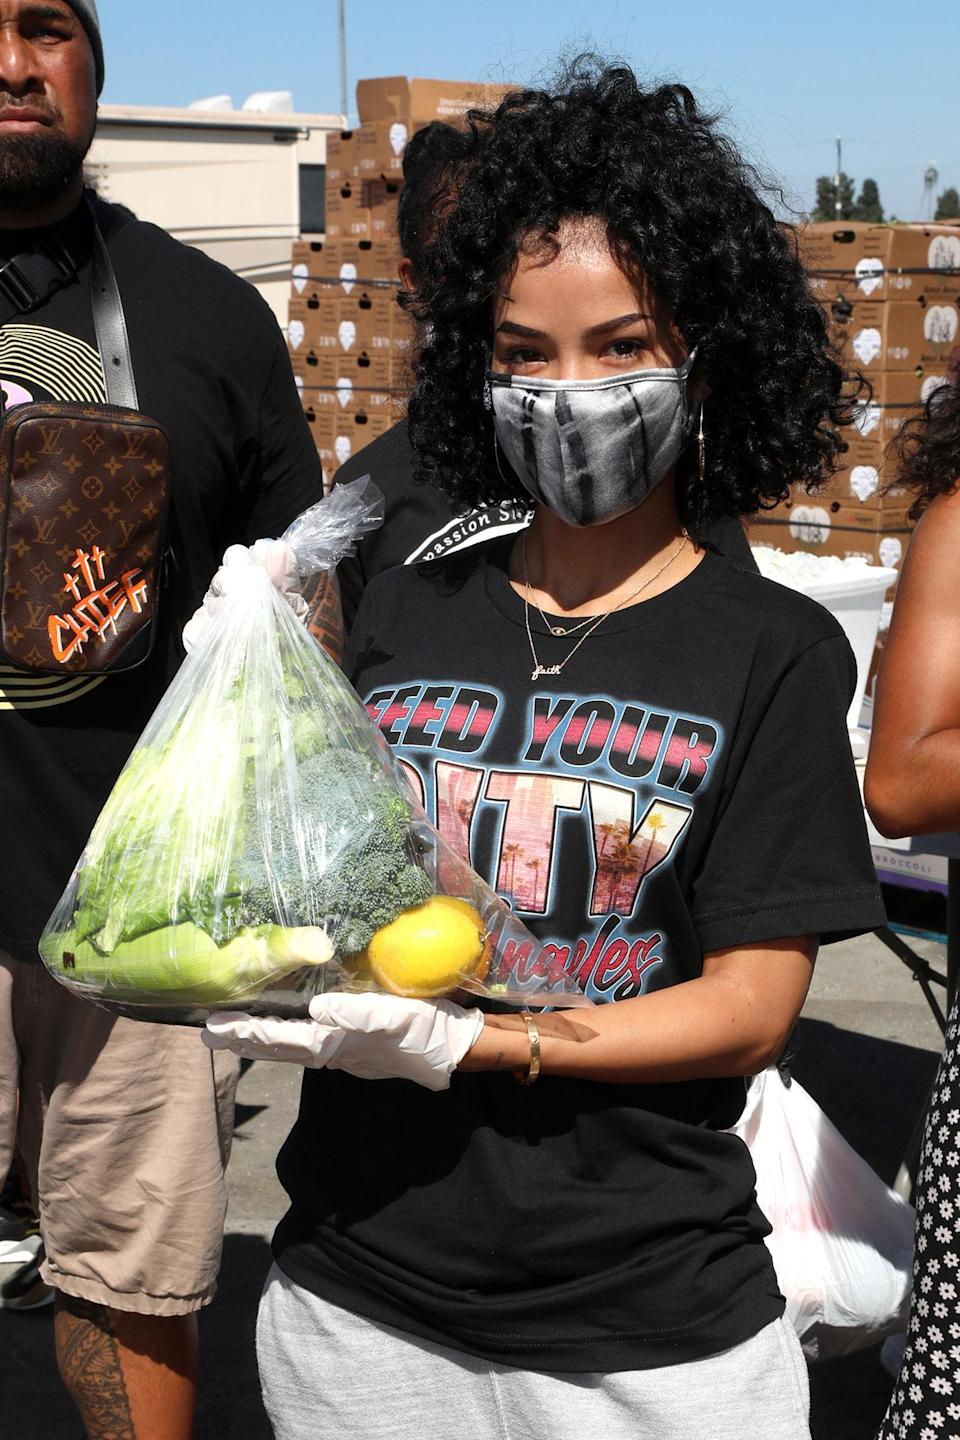 <p>Host Jhené Aiko volunteers at the Feed Your City Challenge Event with co-hosts Mustard and Roddy Ricch (not pictured) in Los Angeles on Saturday.</p>